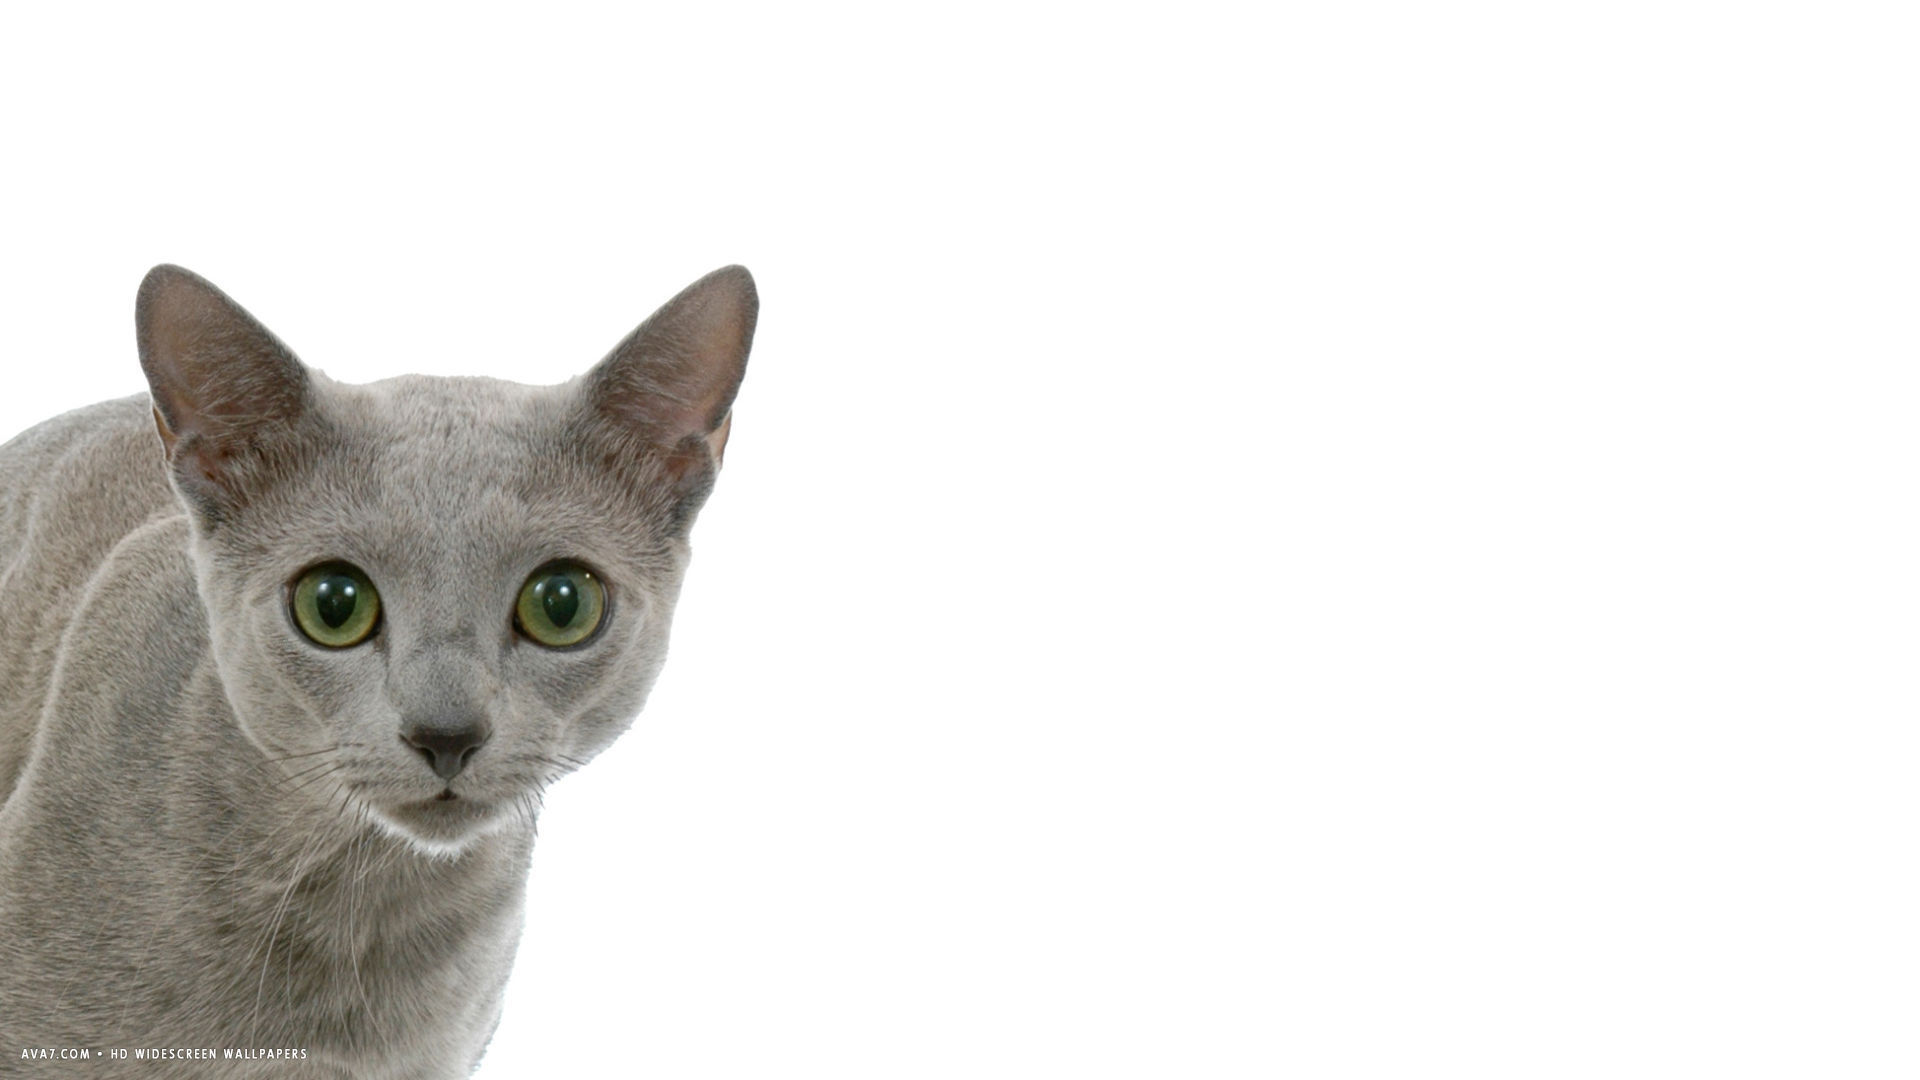 silver rb cat 1920x1080 desktop wallpaper